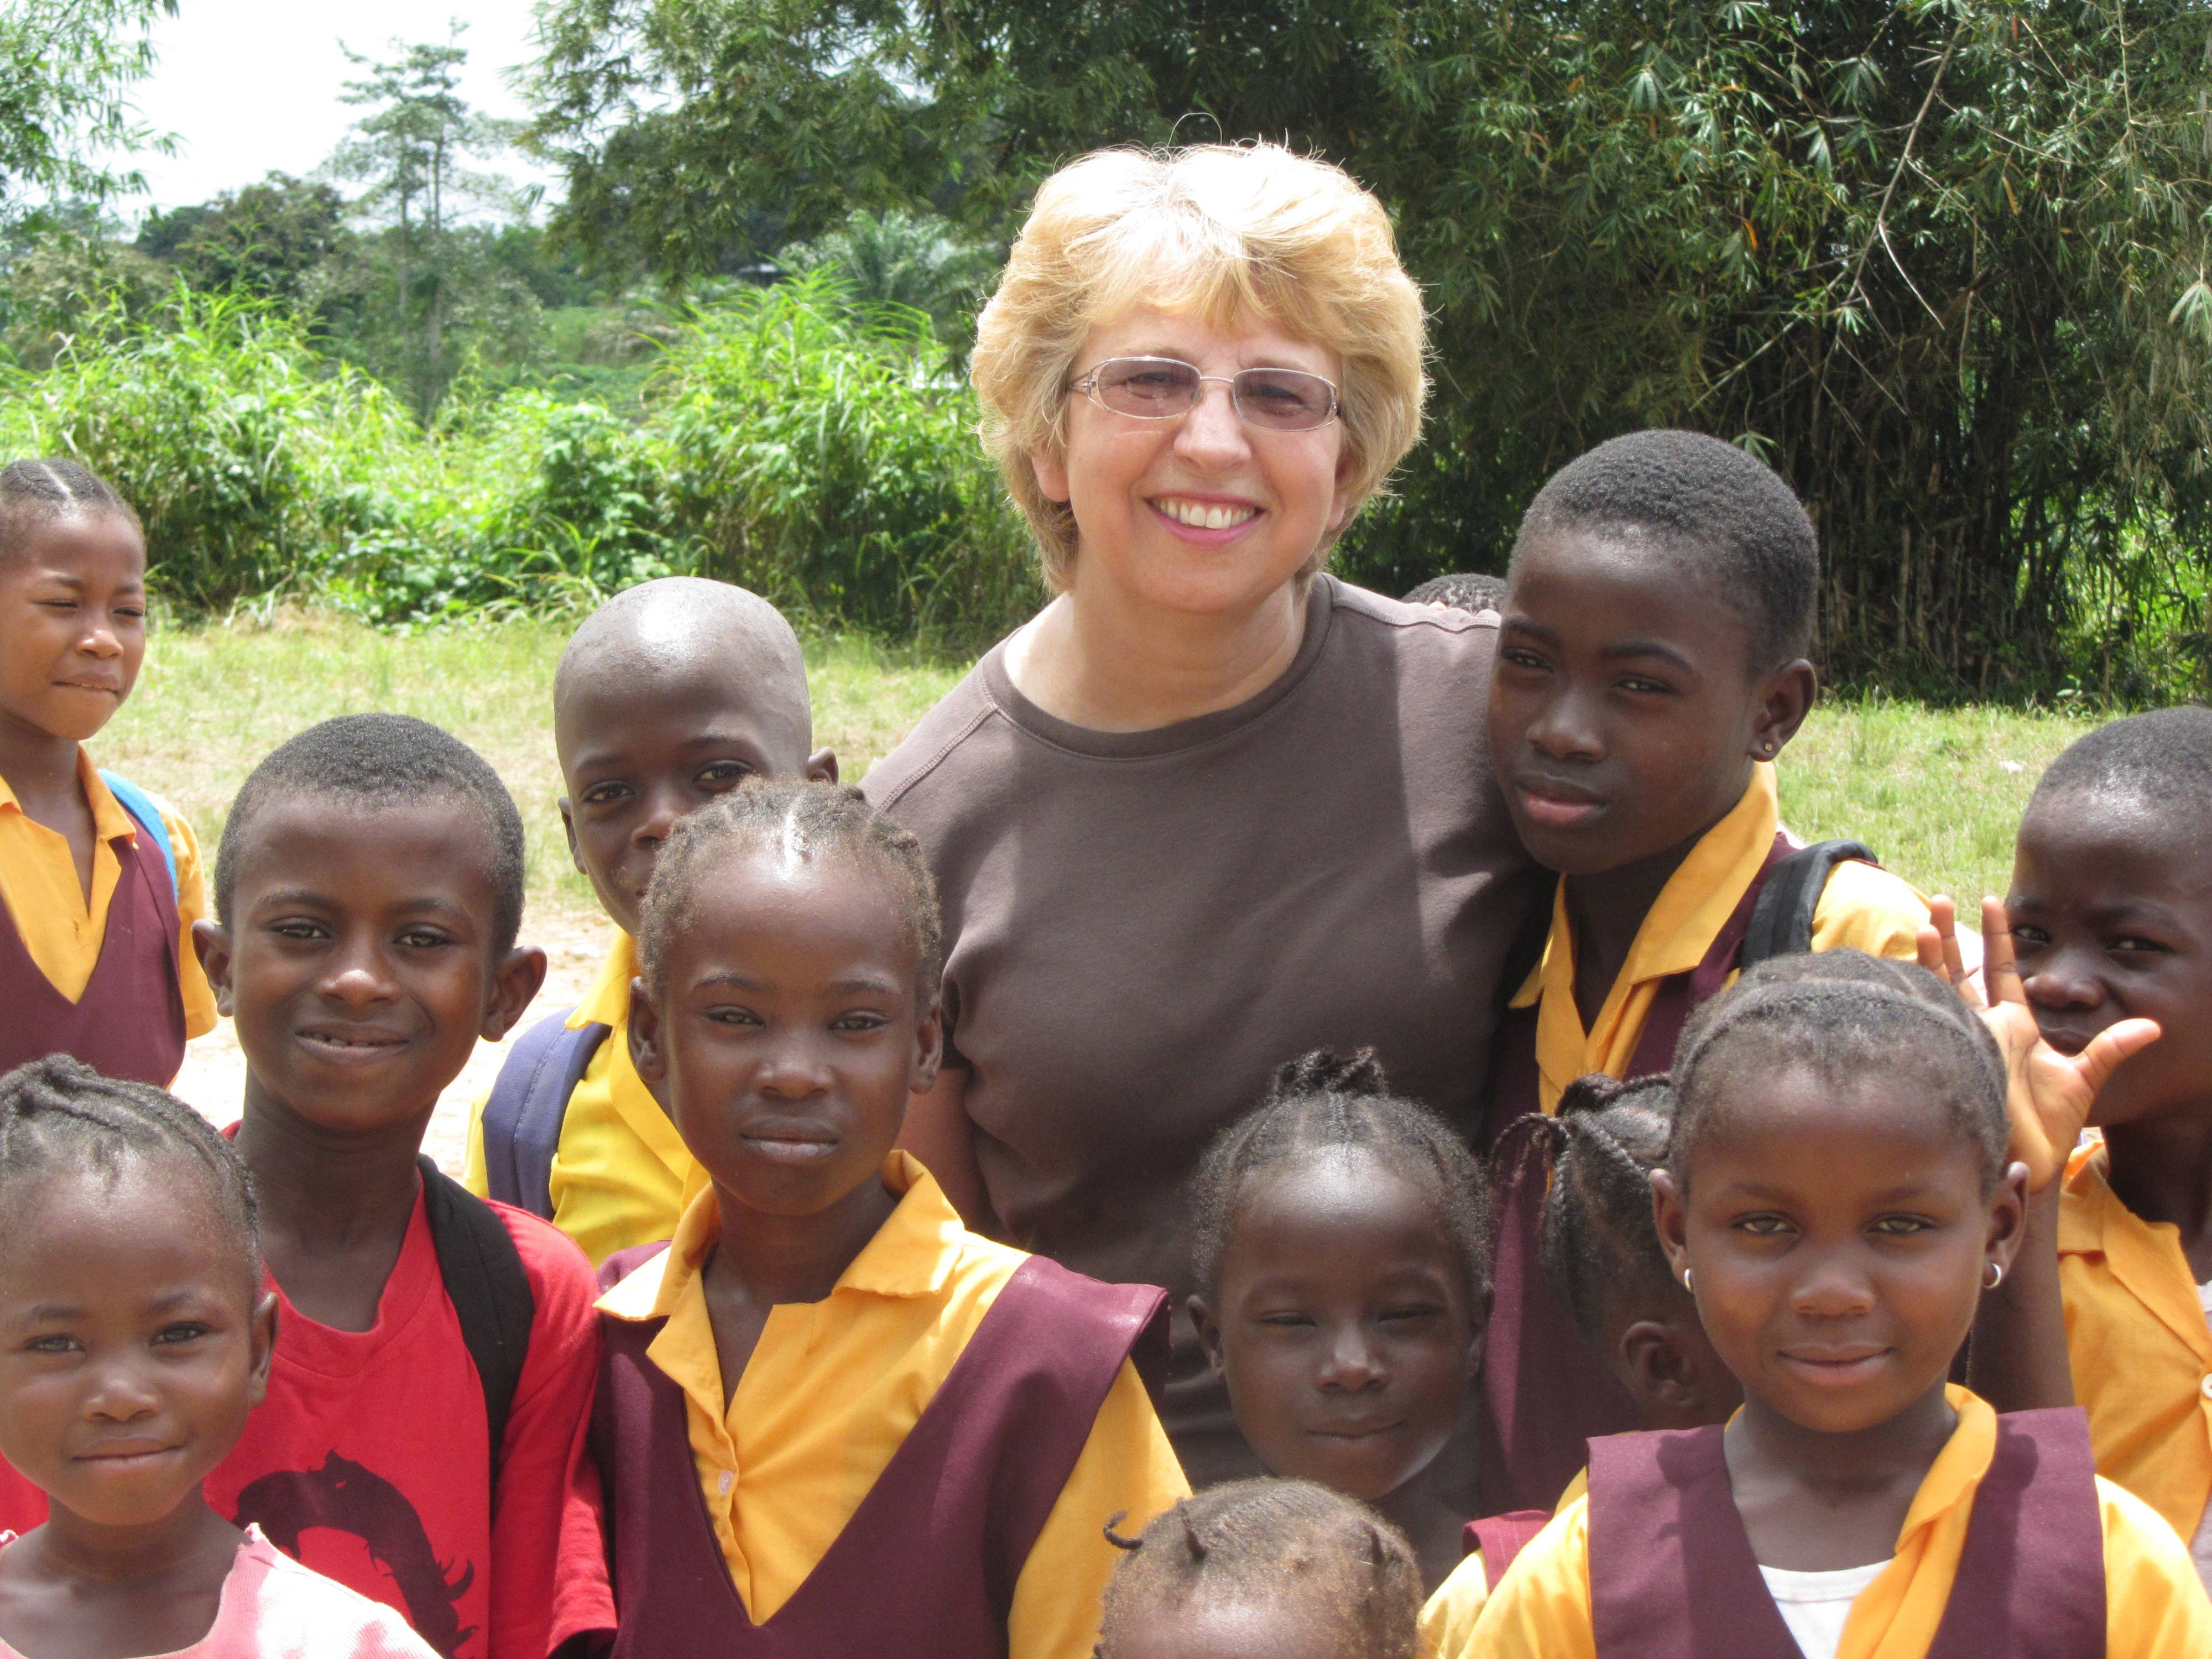 Nancy Writebol, with children in Liberia. Writebol is one of two Americans working for a missionary group in Liberia diagnosed with Ebola. Plans are underway to bring her back for treatment.